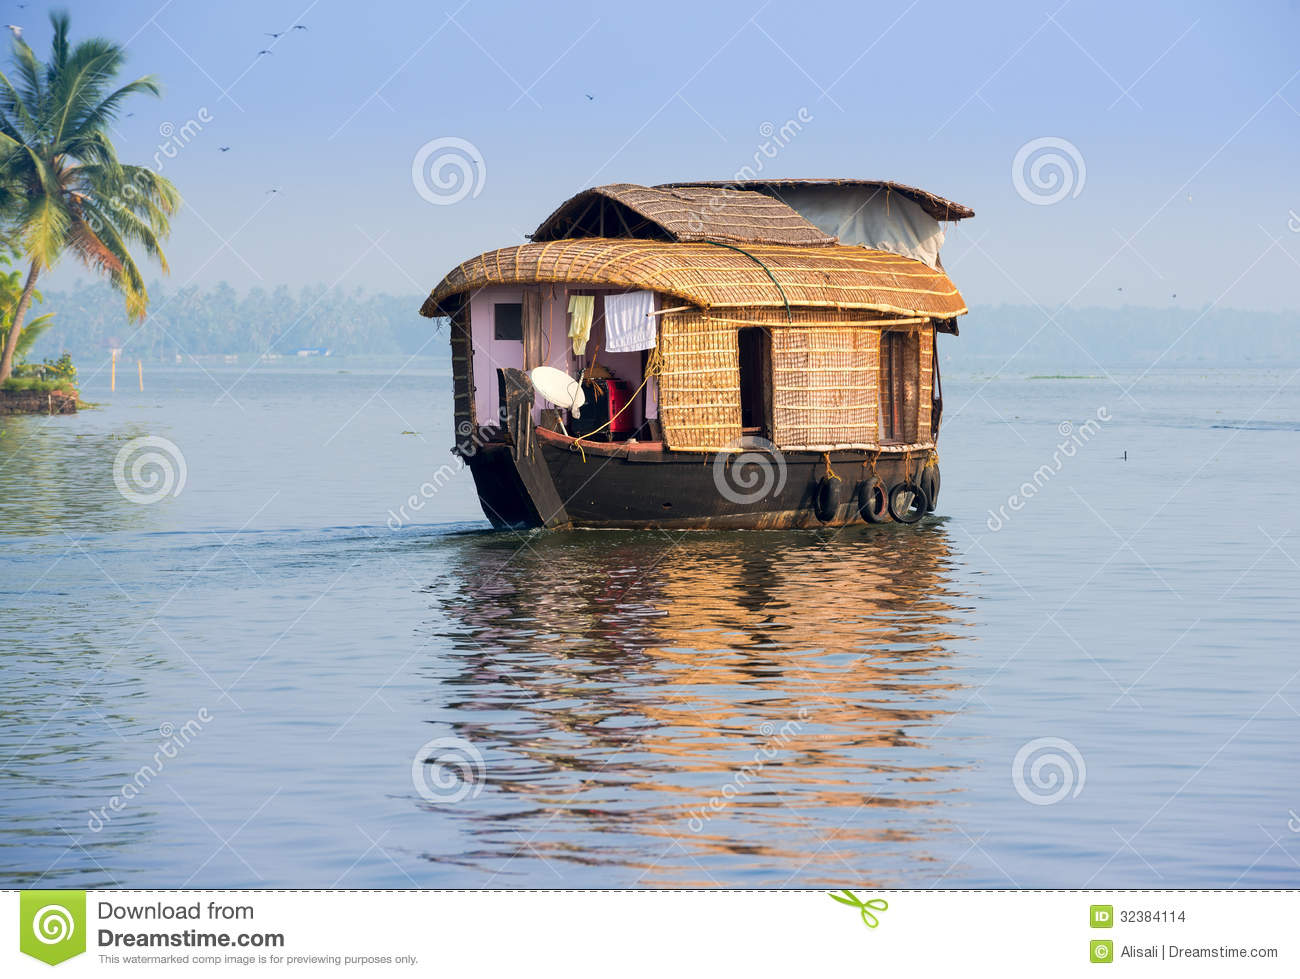 Landscape With Houseboat In Kerala Backwaters Stock Images.